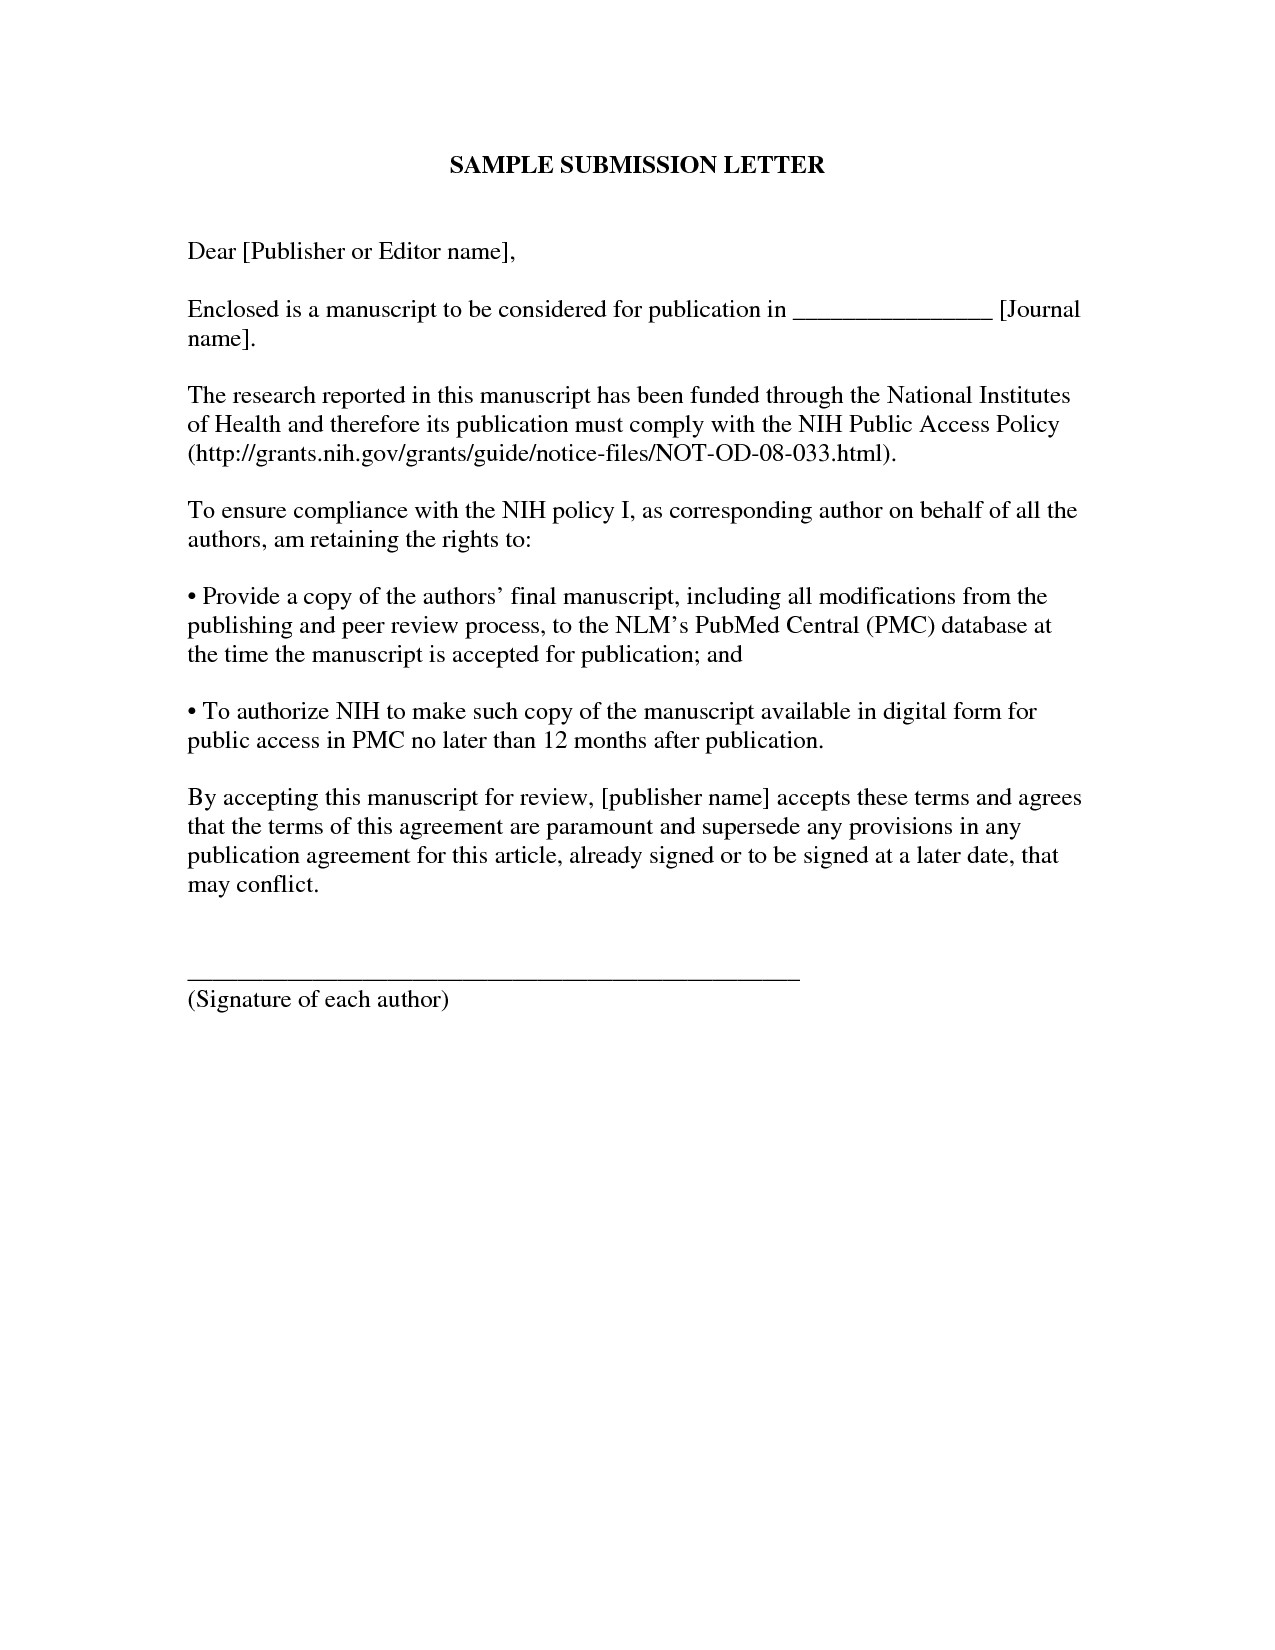 Personal assistant Cover Letter Template - 39 Lovely Executive assistant Cover Letter Sample